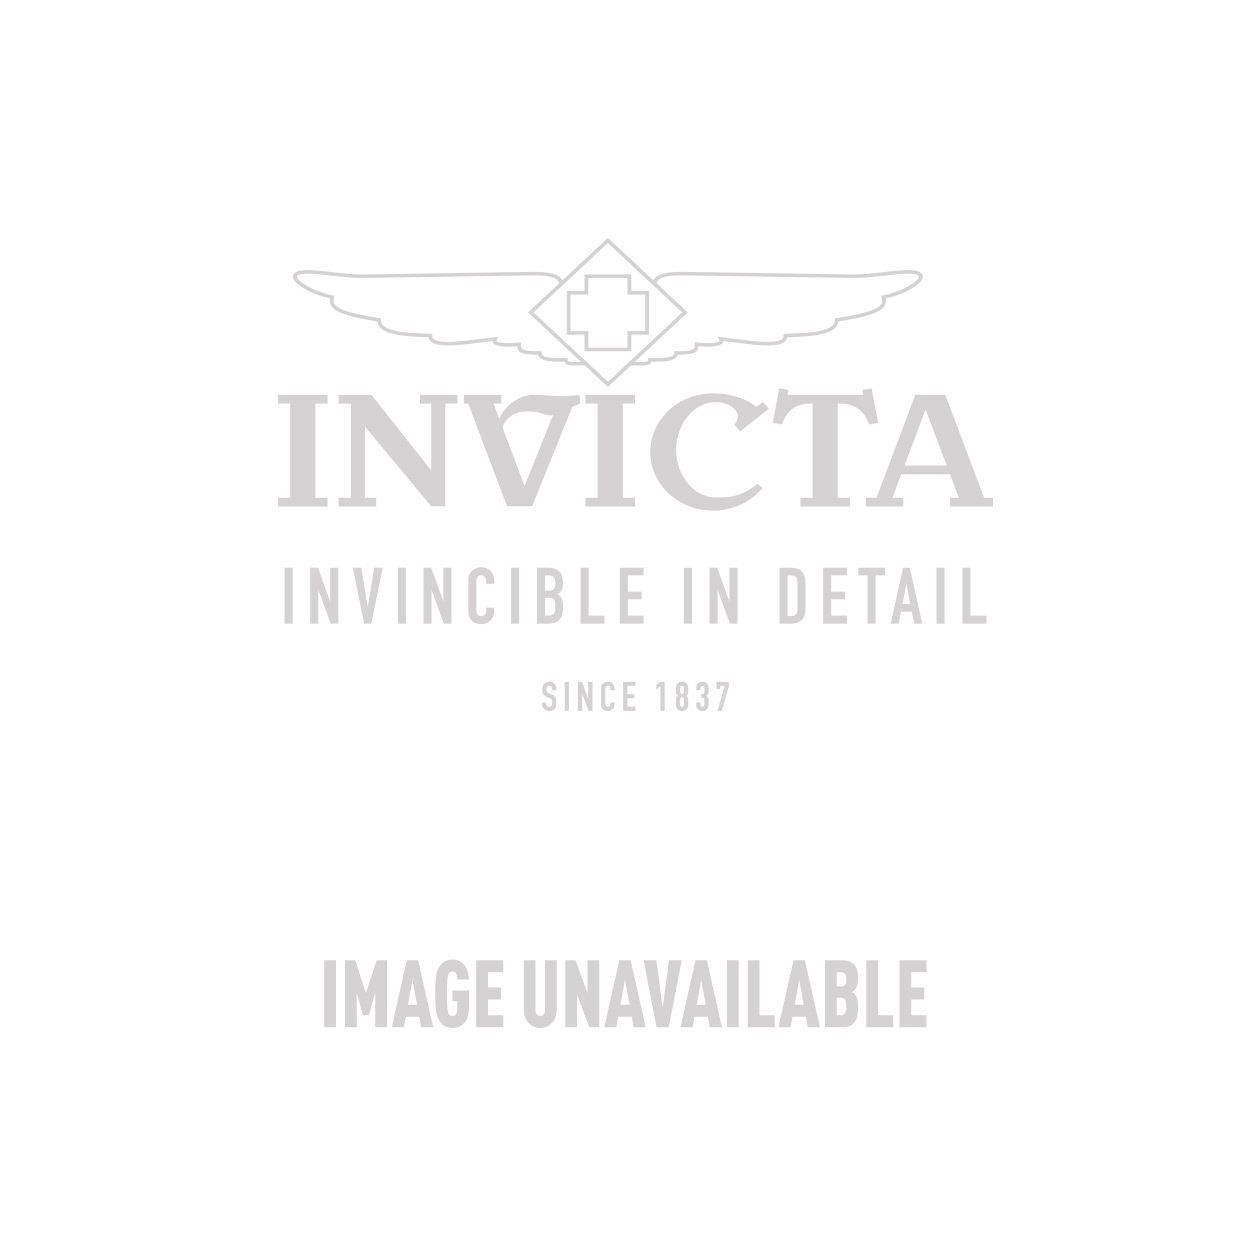 Invicta Corduba Swiss Movement Quartz Watch - Gold case with Gold tone Stainless Steel band - Model 14828